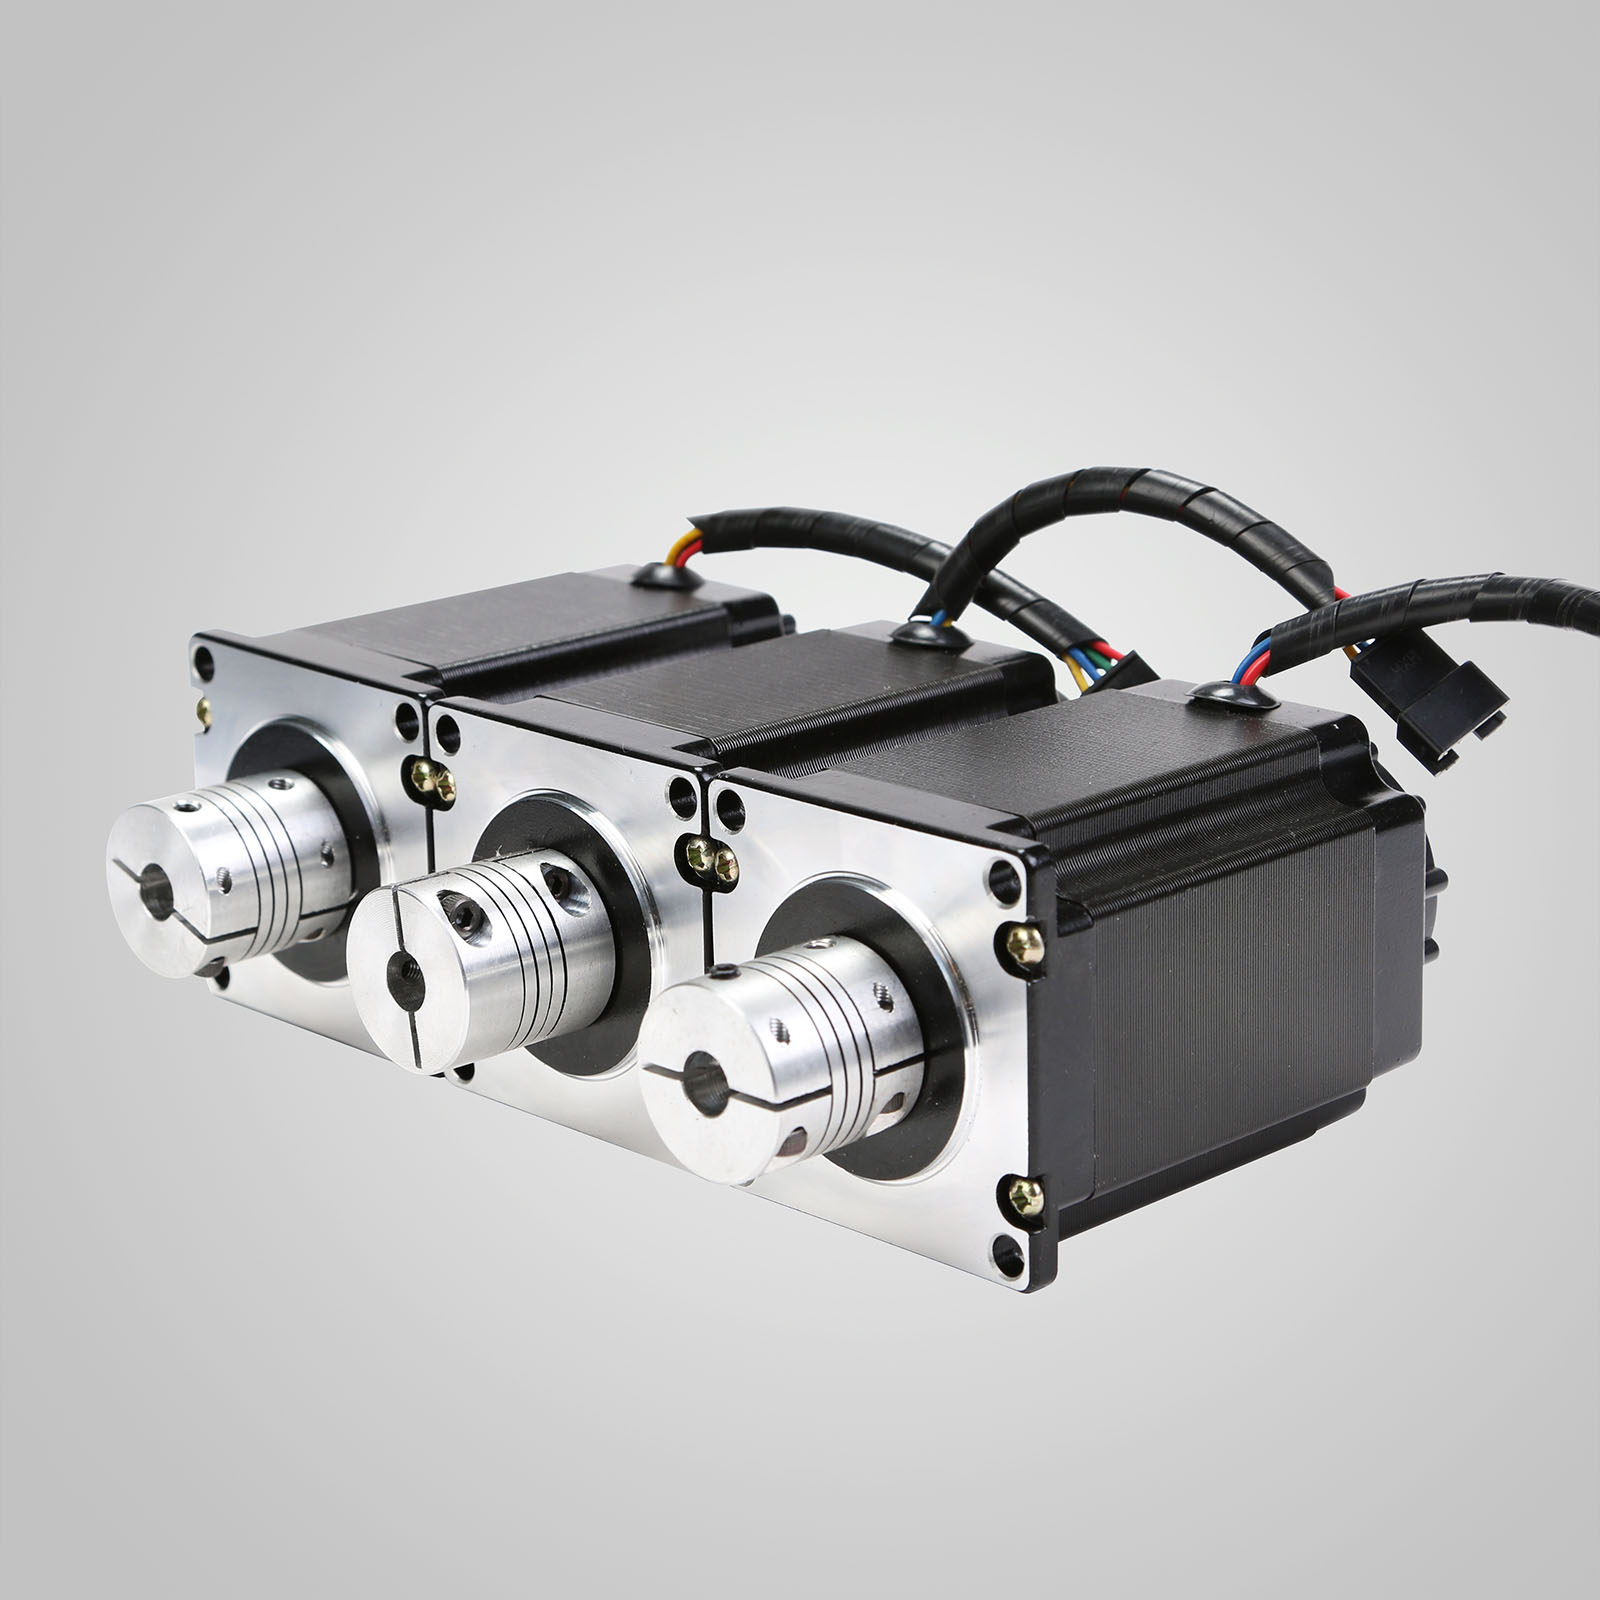 6040 Cnc Router Frame Milling Machine